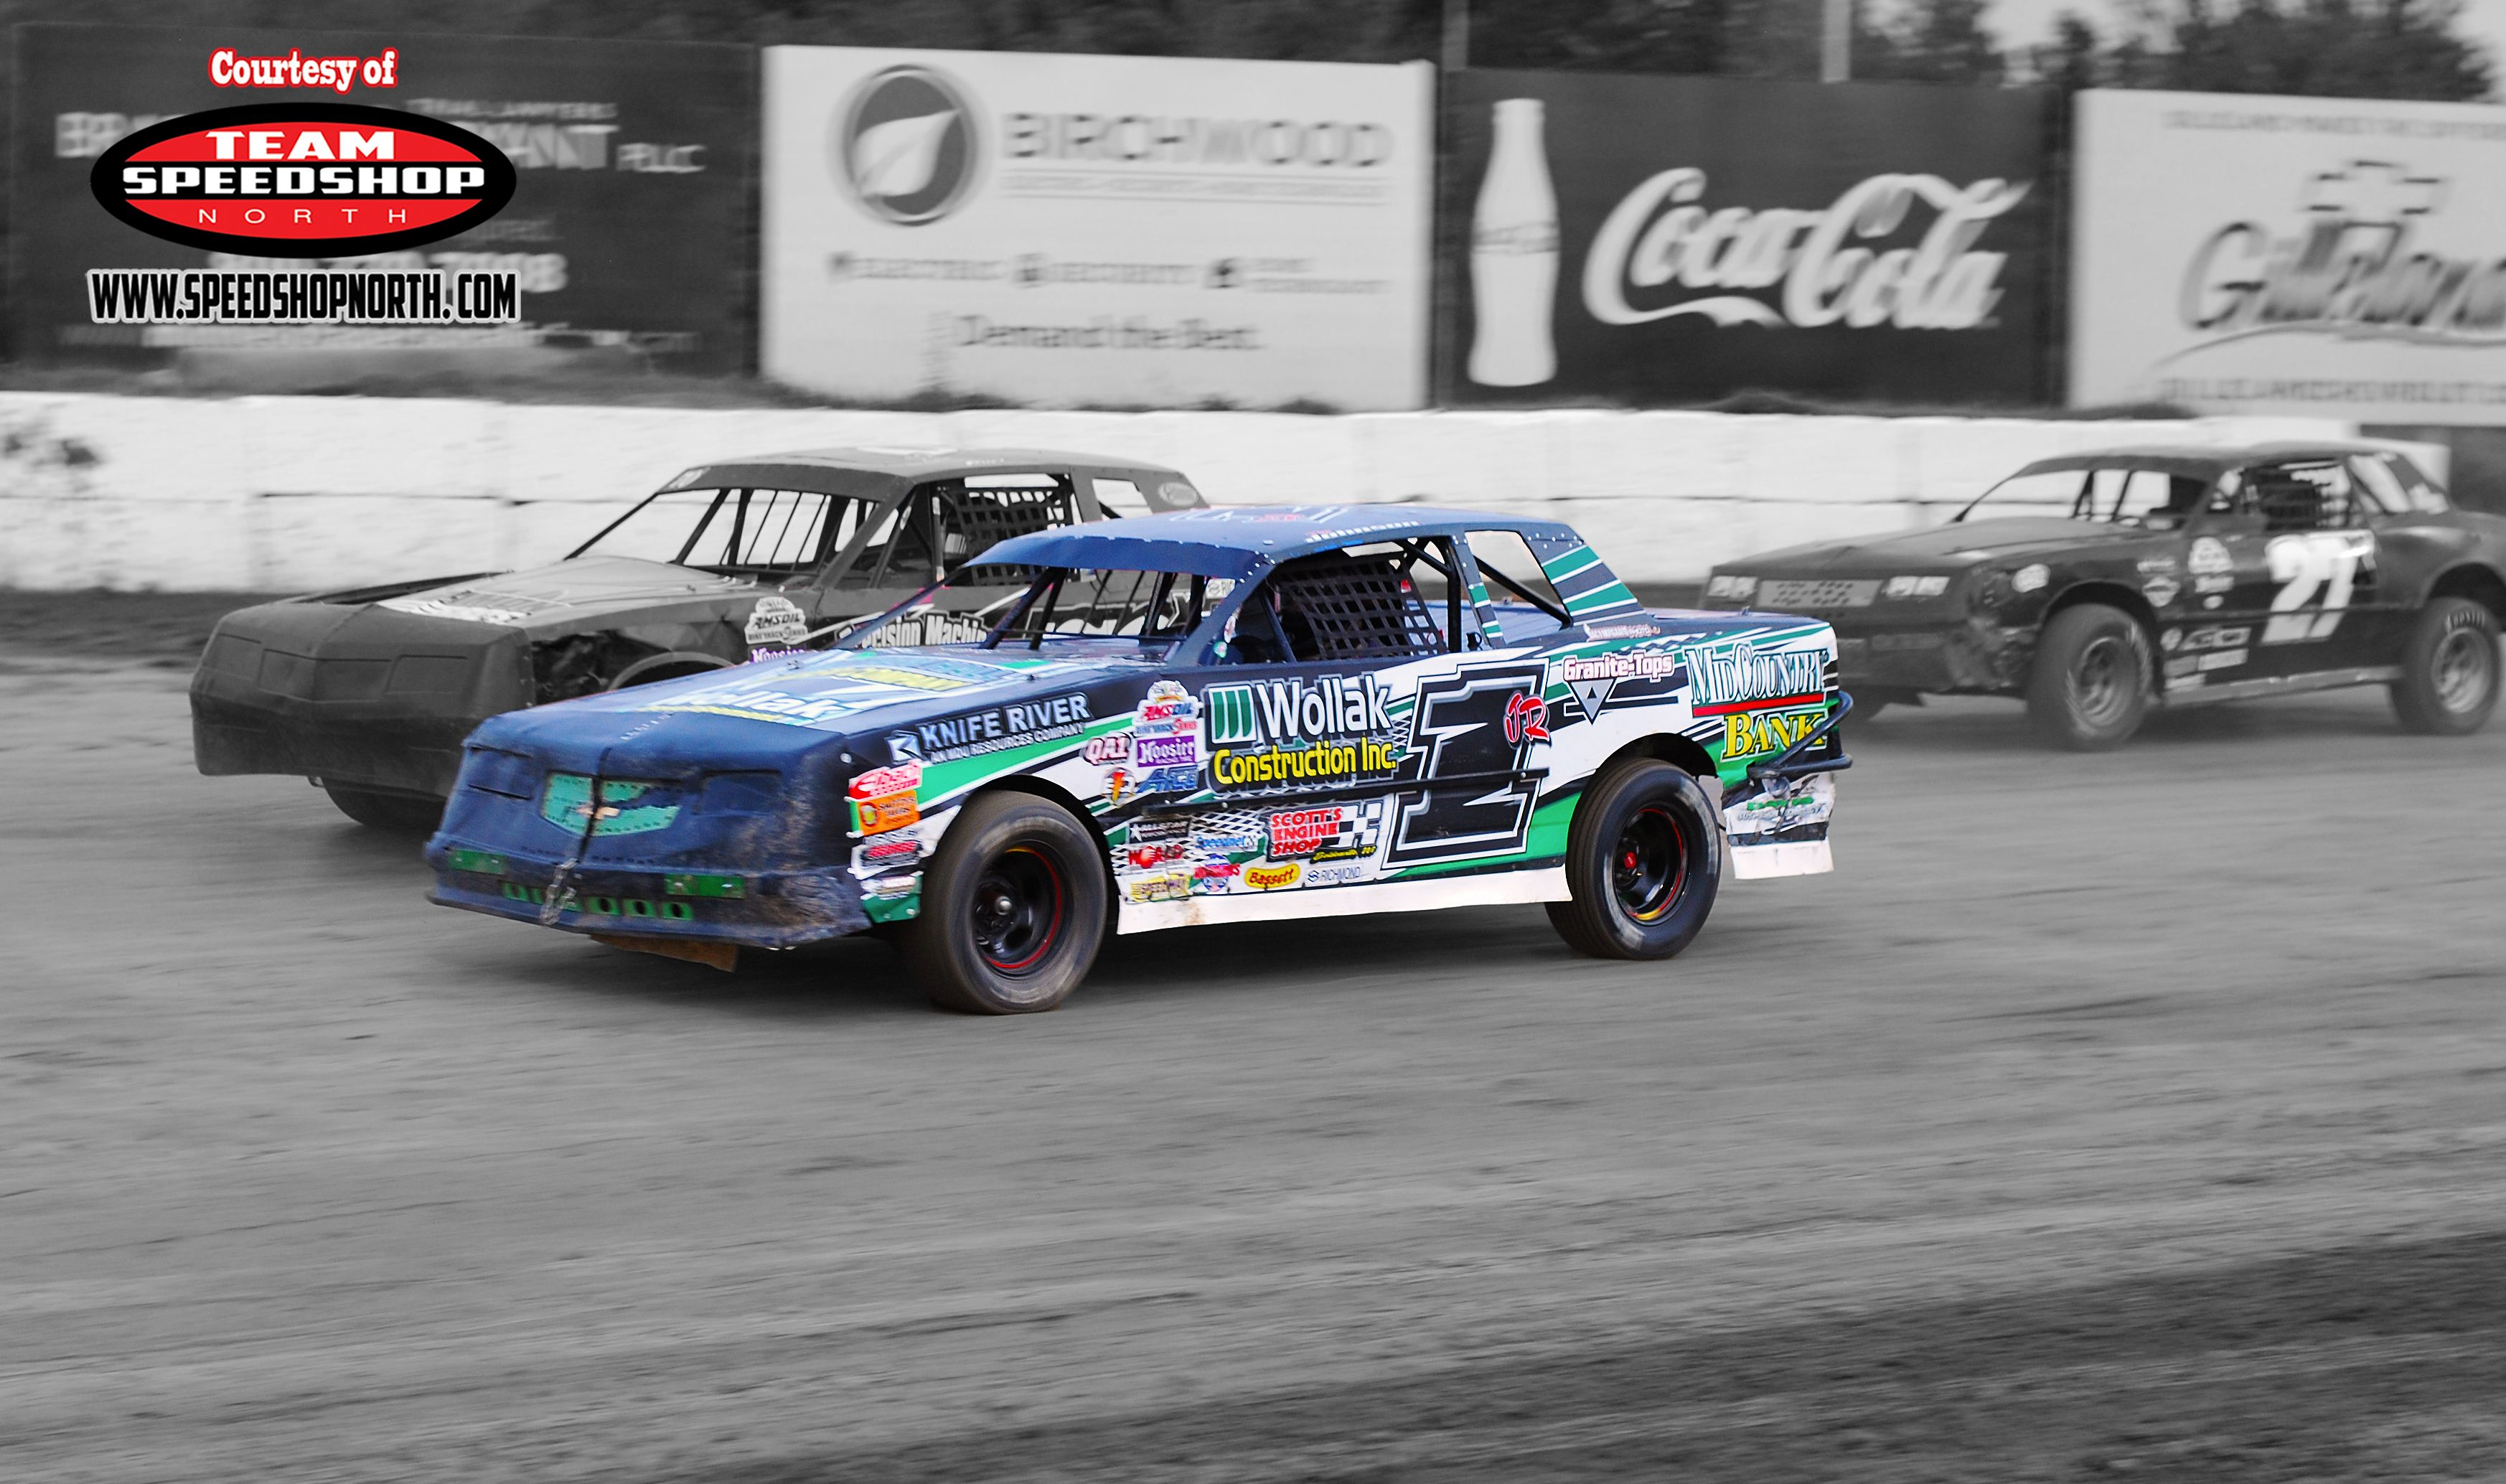 1jr Tim Johnson Current Wissota Street Stock National Points